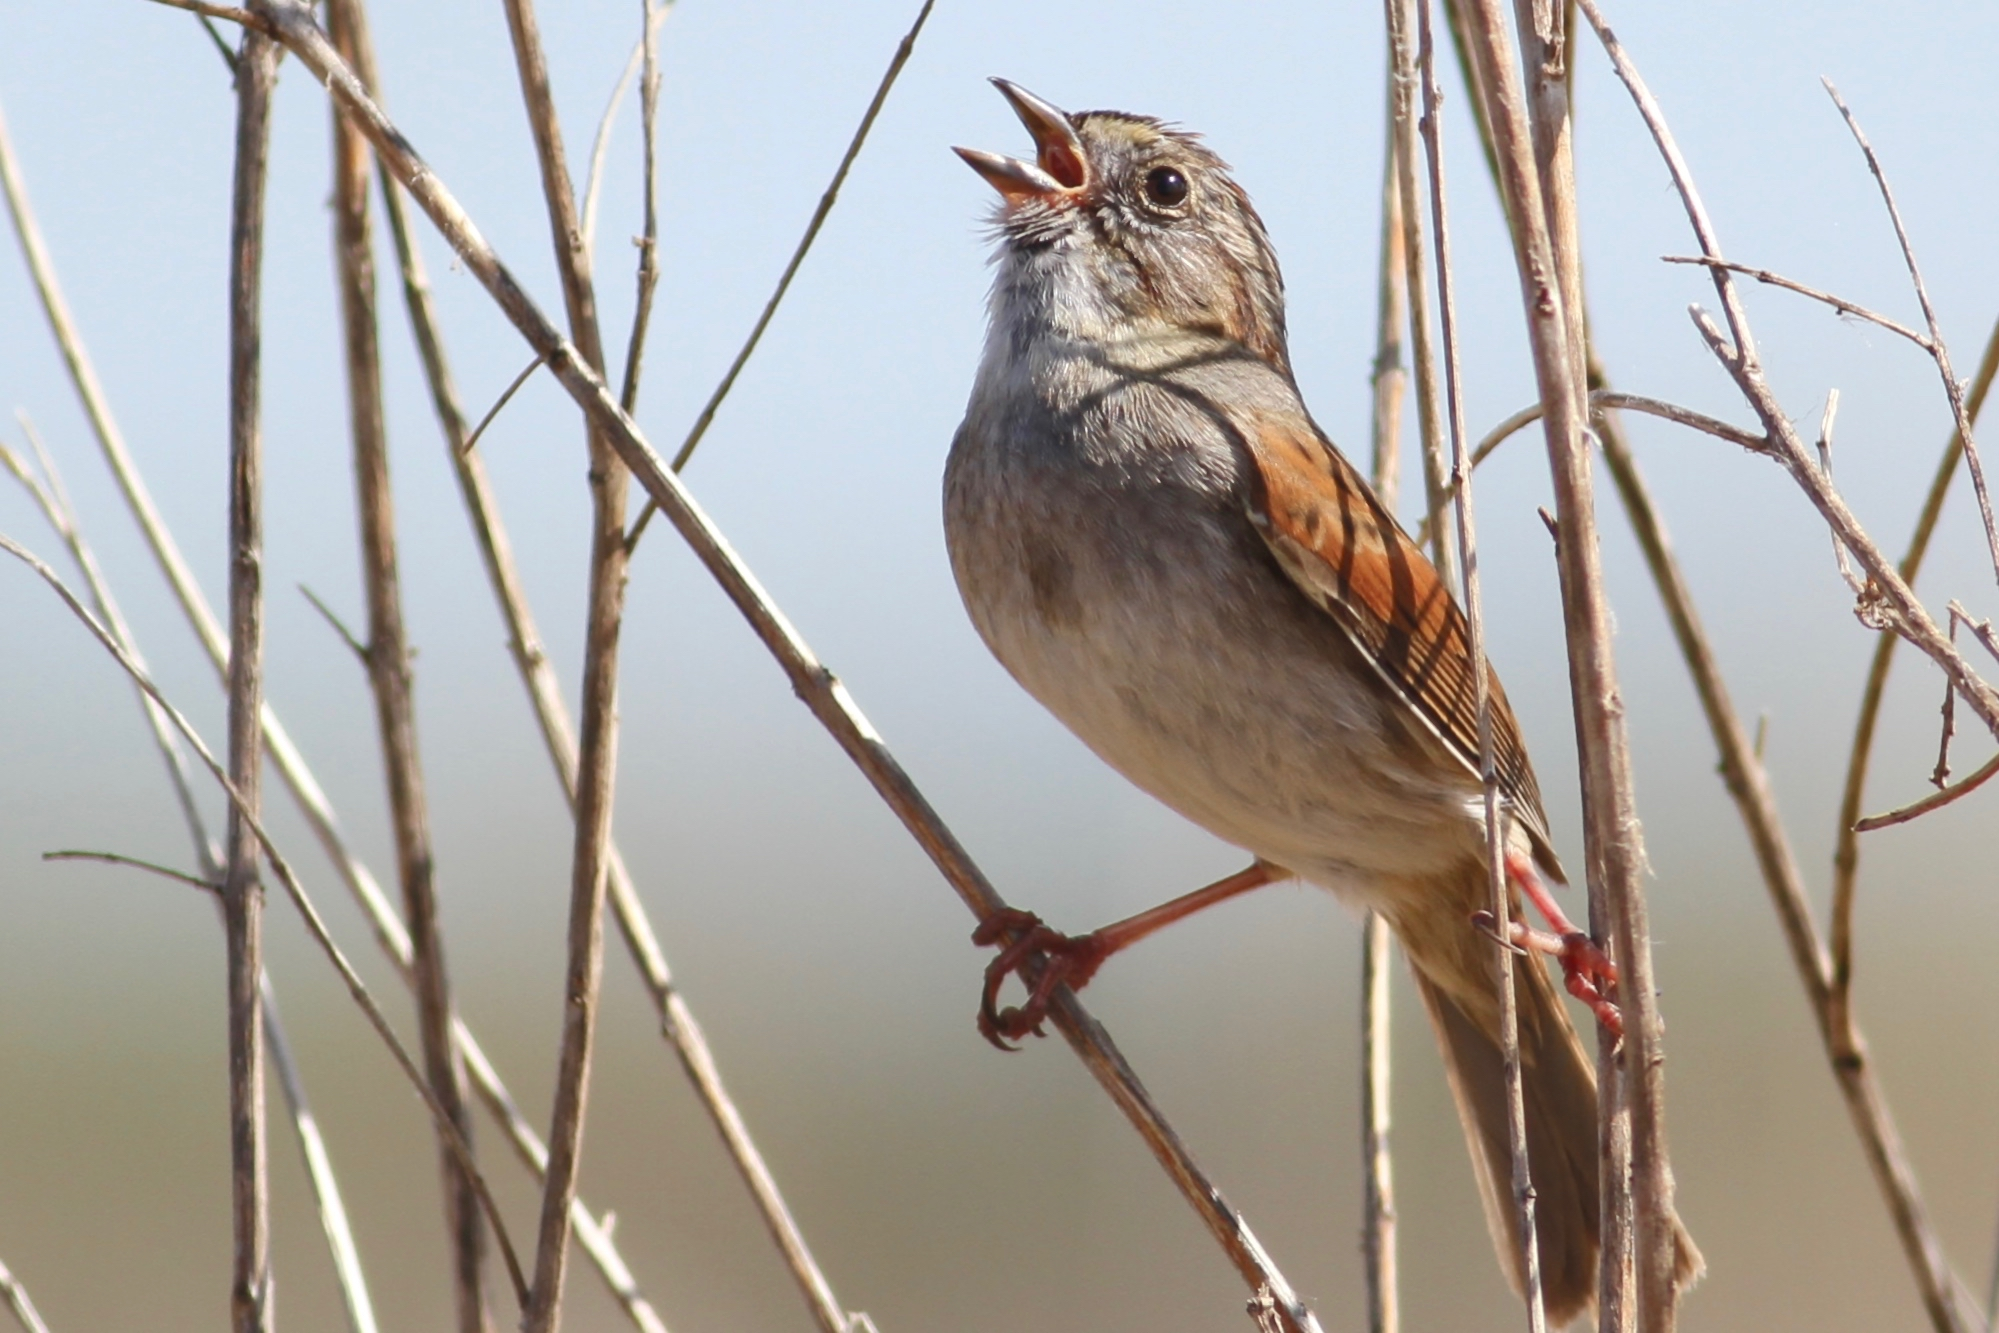 Researchers at Duke University have found a species of birds that has a tradition of passing songs down from one generation to the next.